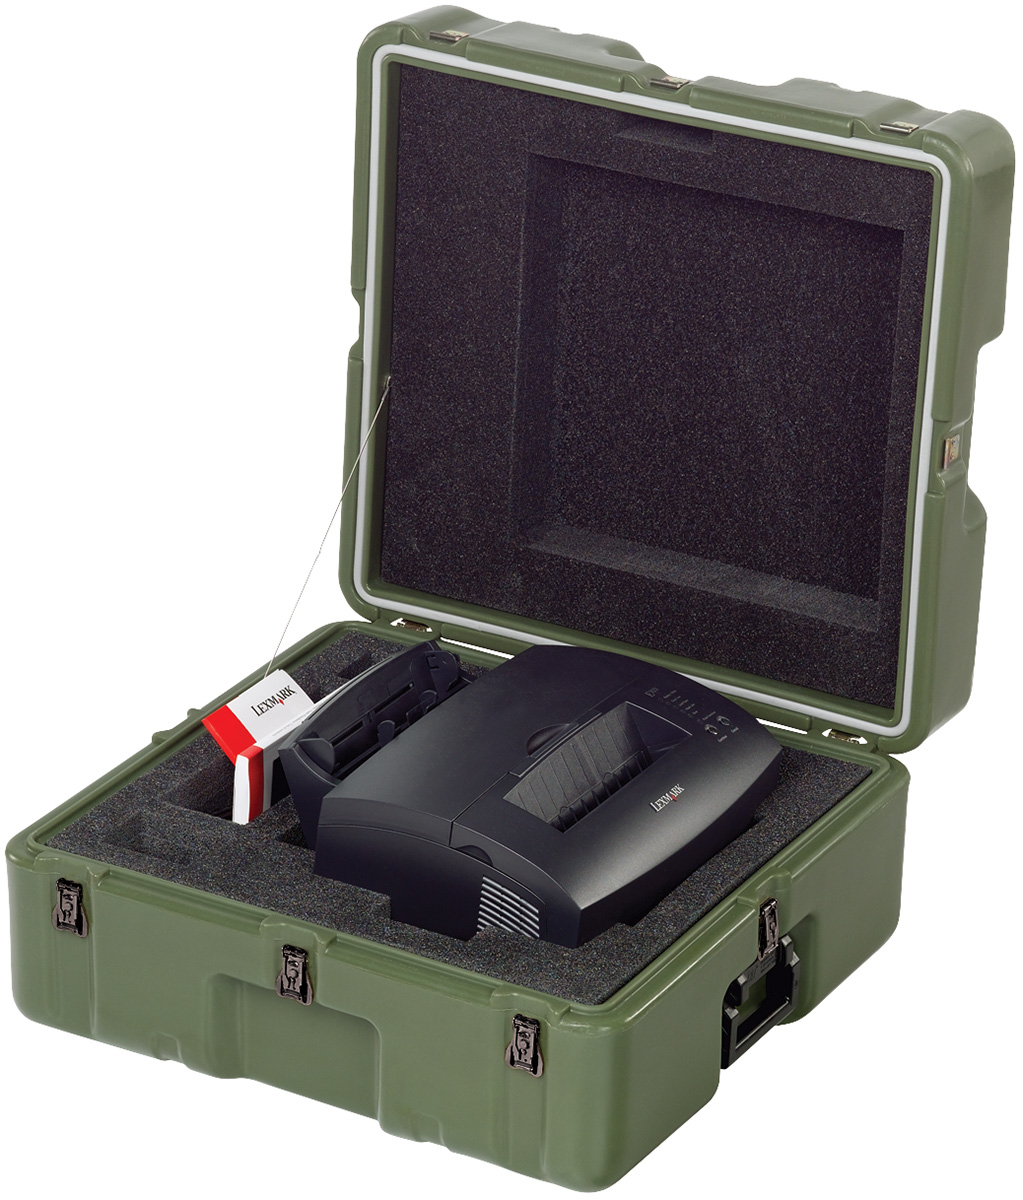 pelican peli products 472 LEXMARK E323 usa military printer transport case